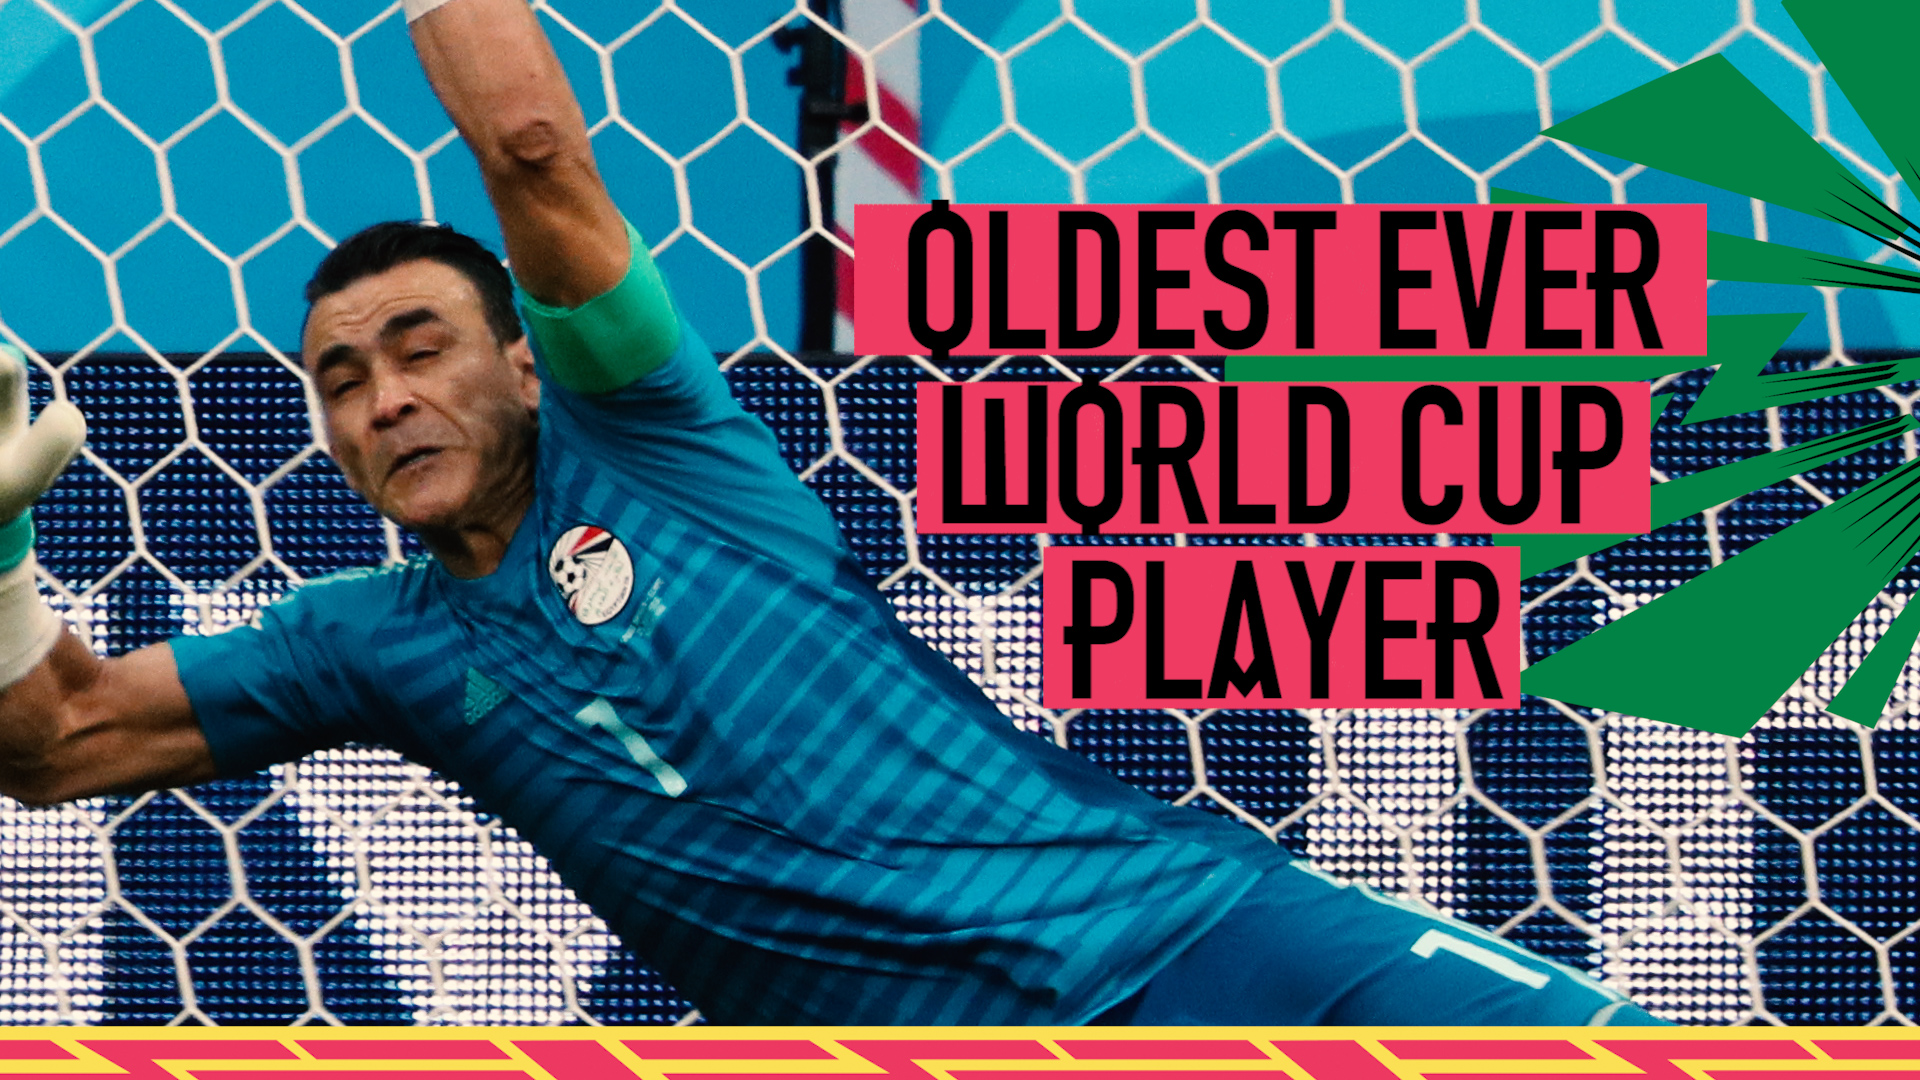 World Cup 2018: Essam El-Hadary becomes World Cup's oldest player